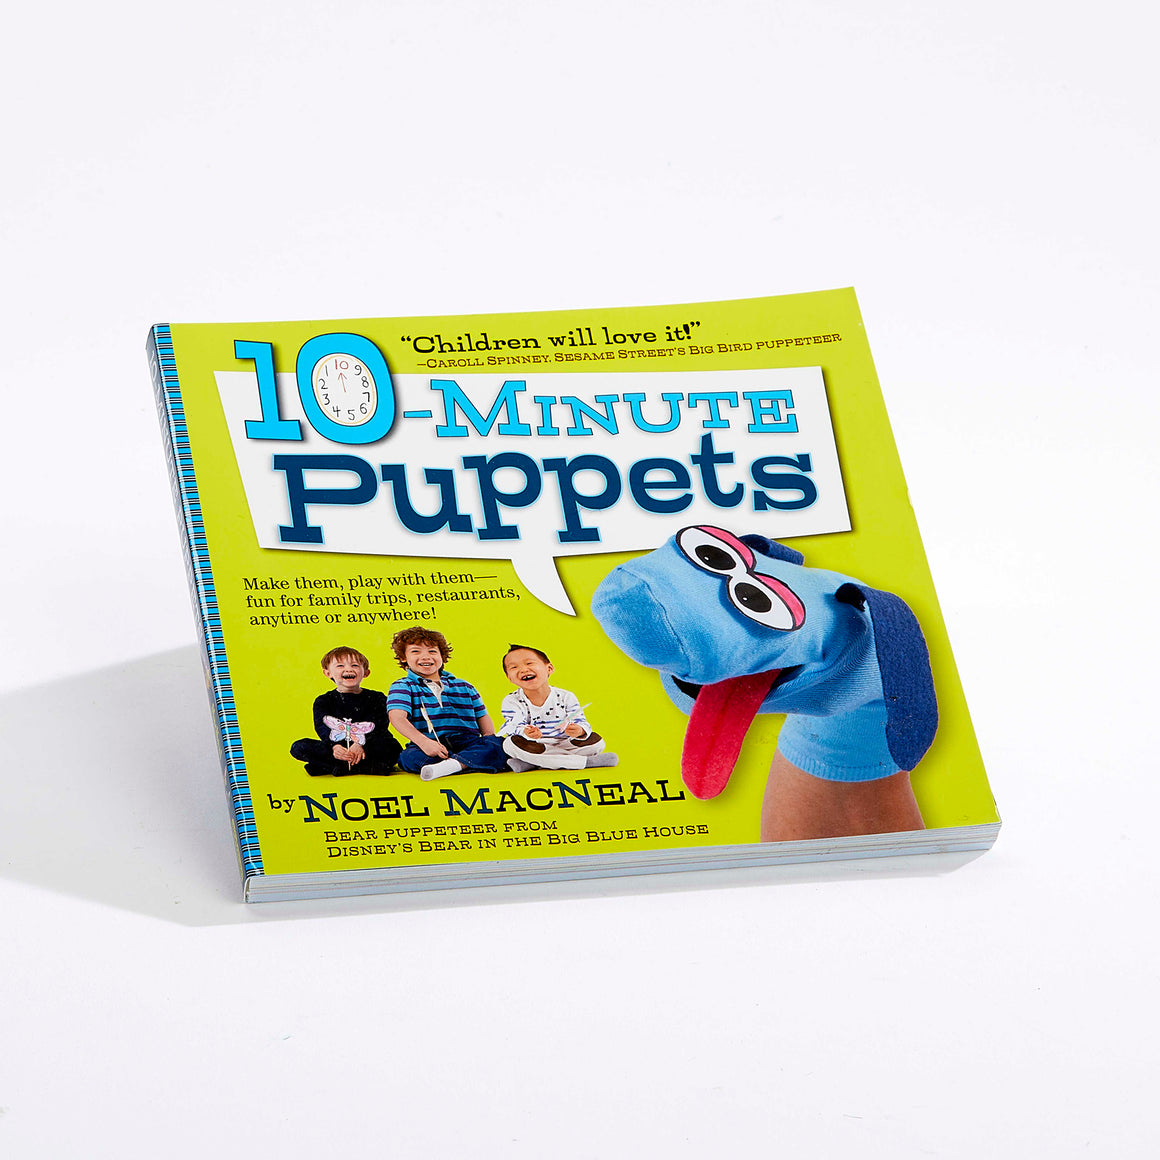 10 Minute Puppets